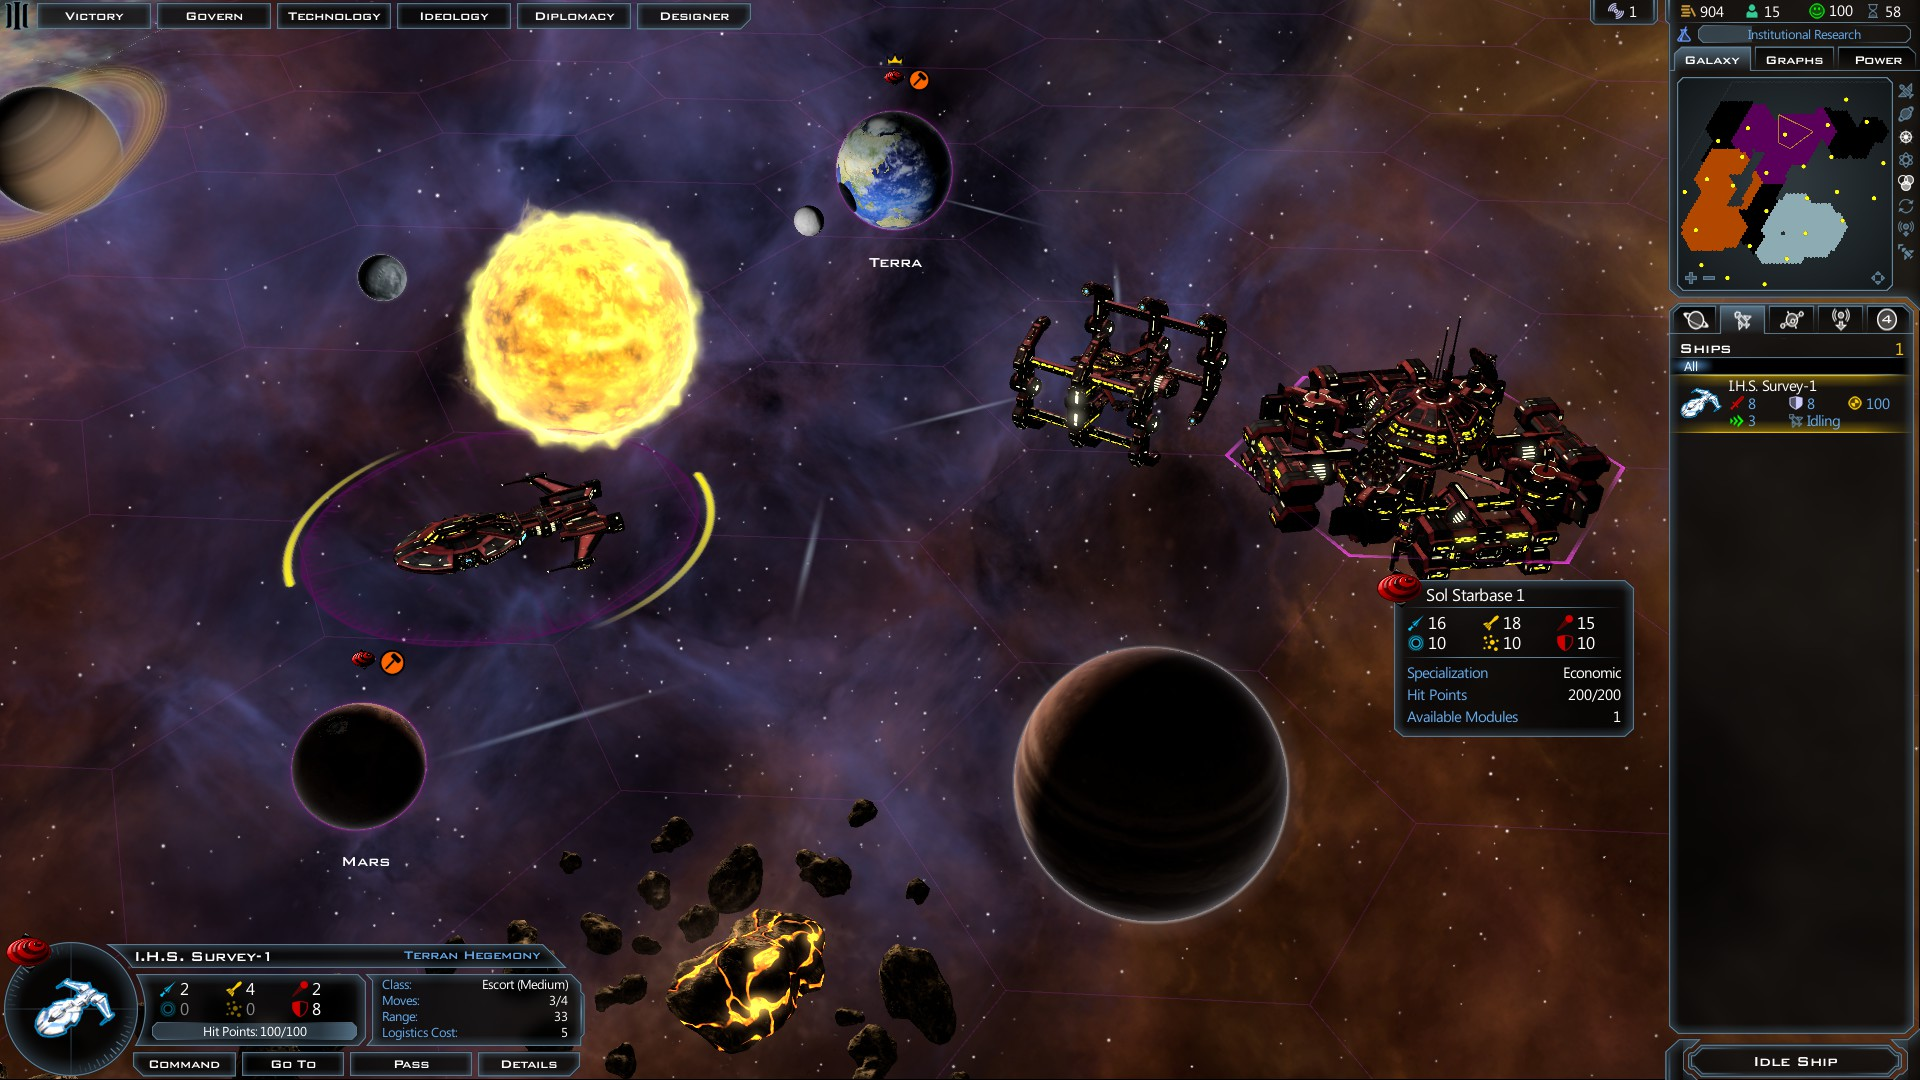 Galactic civilizations iii review spacesector galactic civilization iii a turn based space 4x strategy game by stardock entertainment malvernweather Gallery